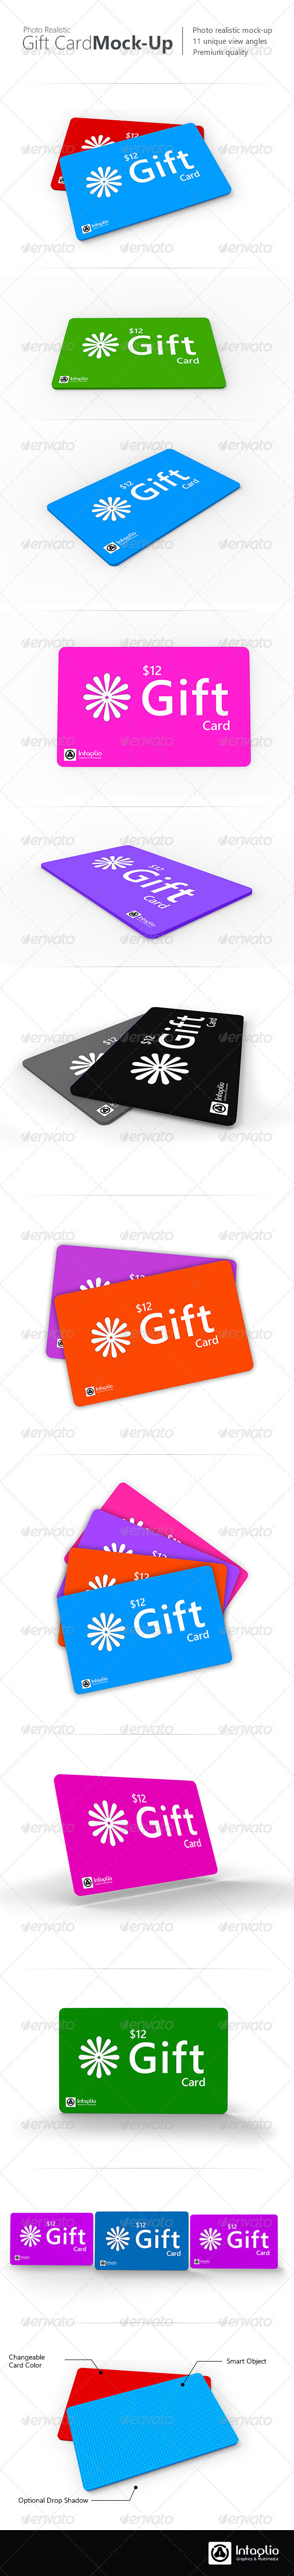 Gift Card Mockup - Miscellaneous Product Mock-Ups